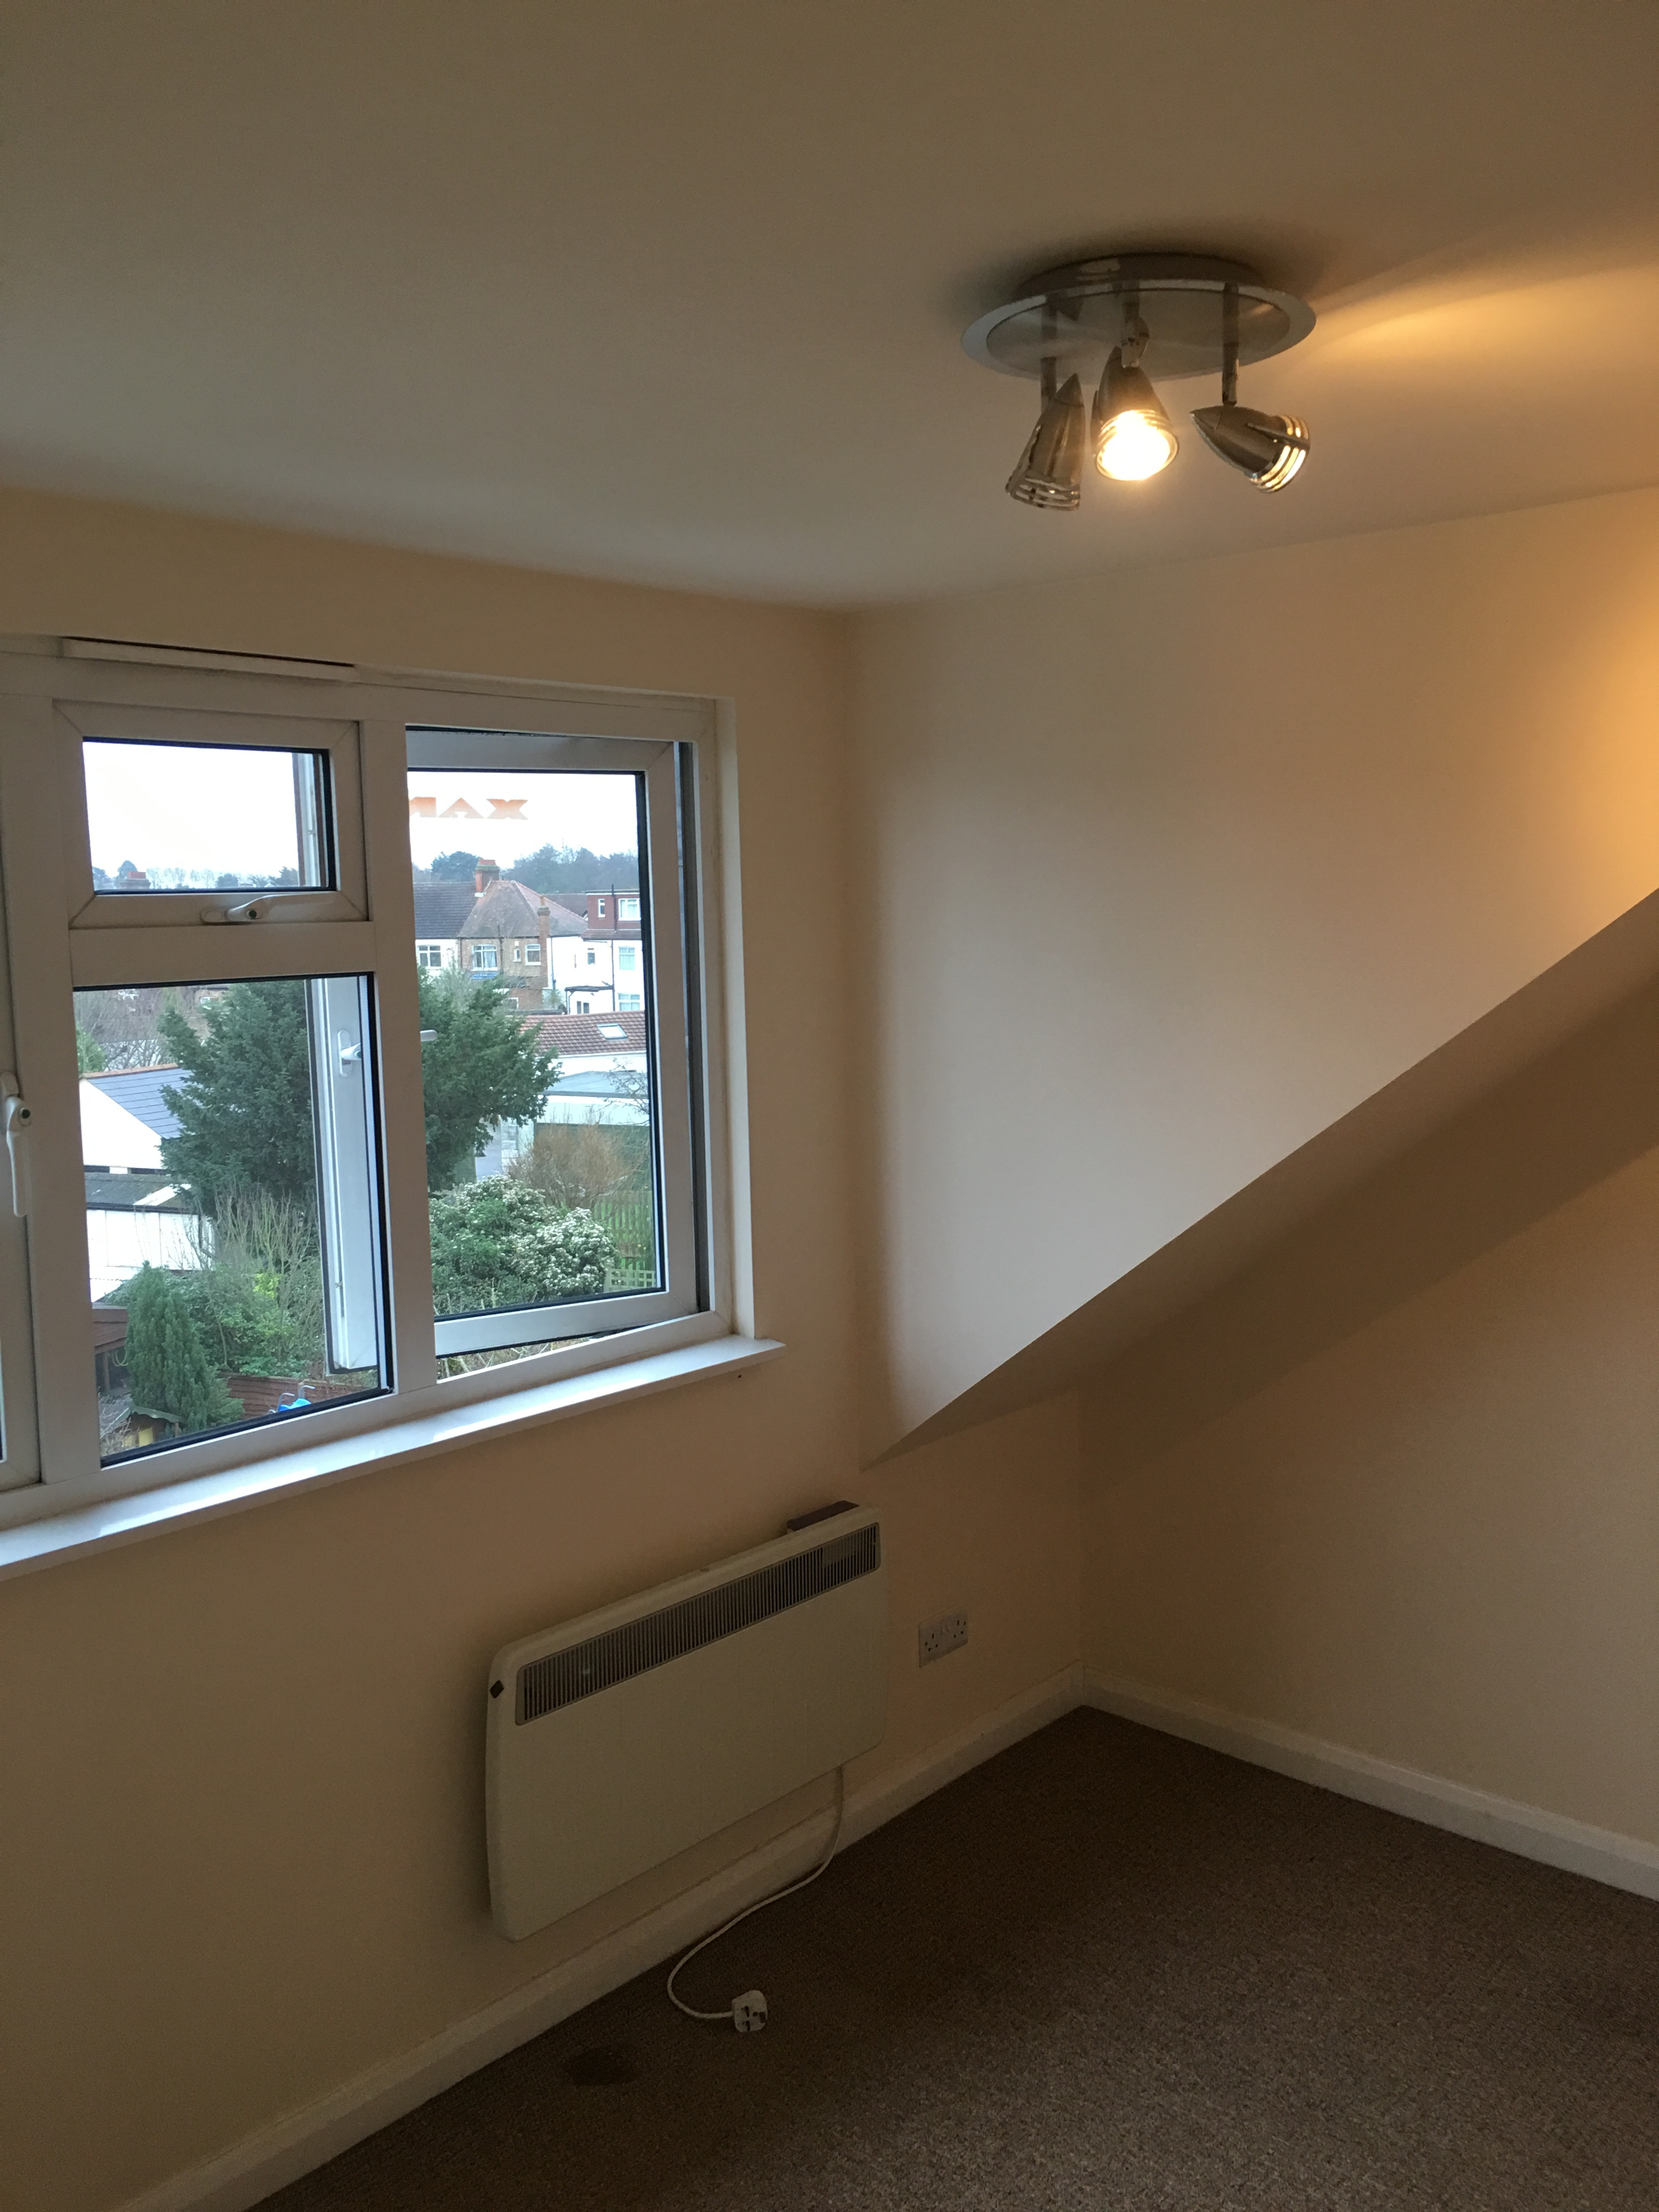 1 Bed Apartment to Rent - Firs Lane, London, N21 3ES